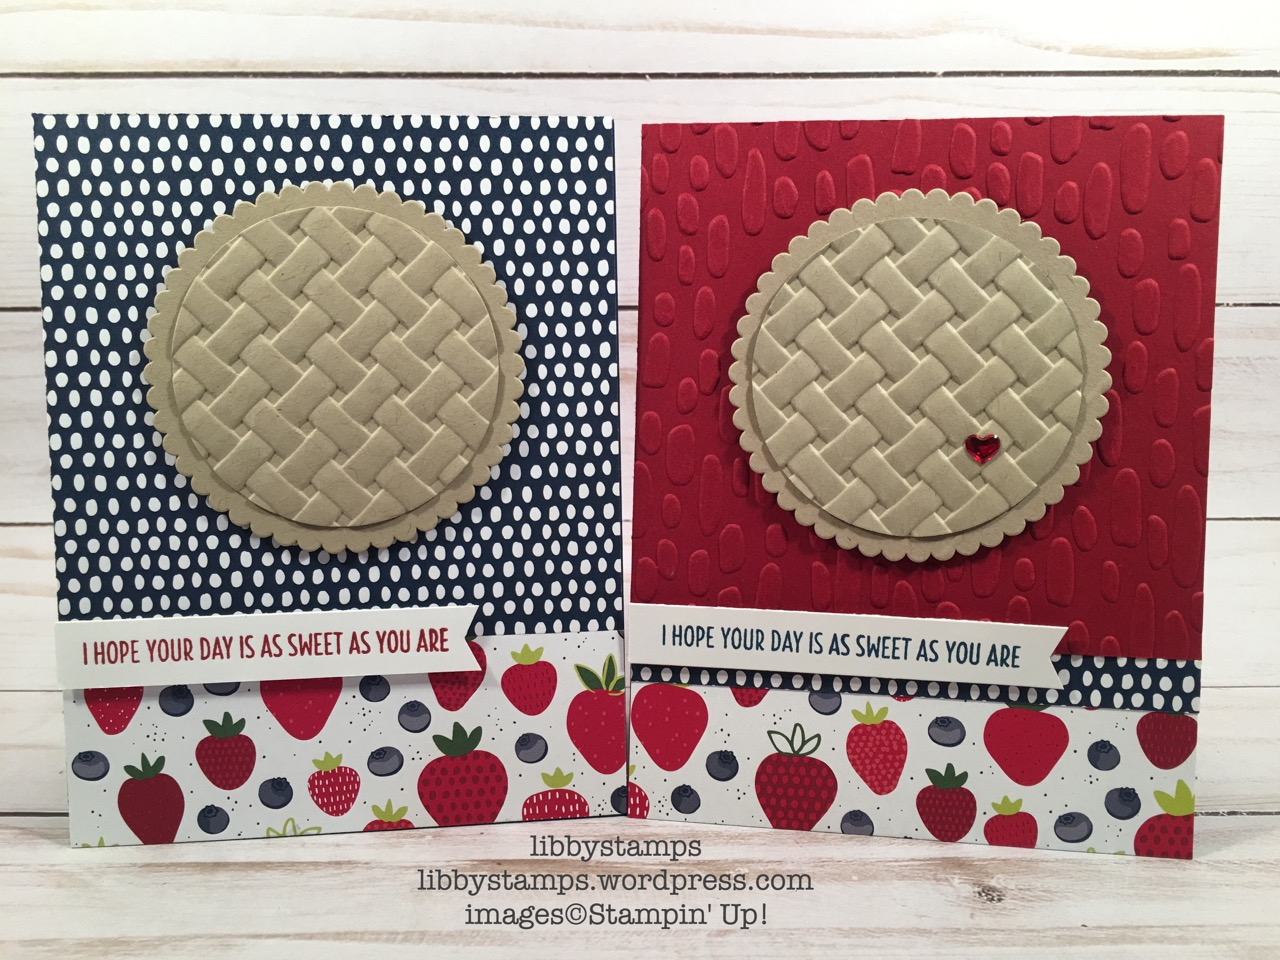 libbystamps, stampin up, Cool Treats, Layering Circles Framelits, Metallic Enamel Shapes, Sweetheart Embossing Folder, We Create